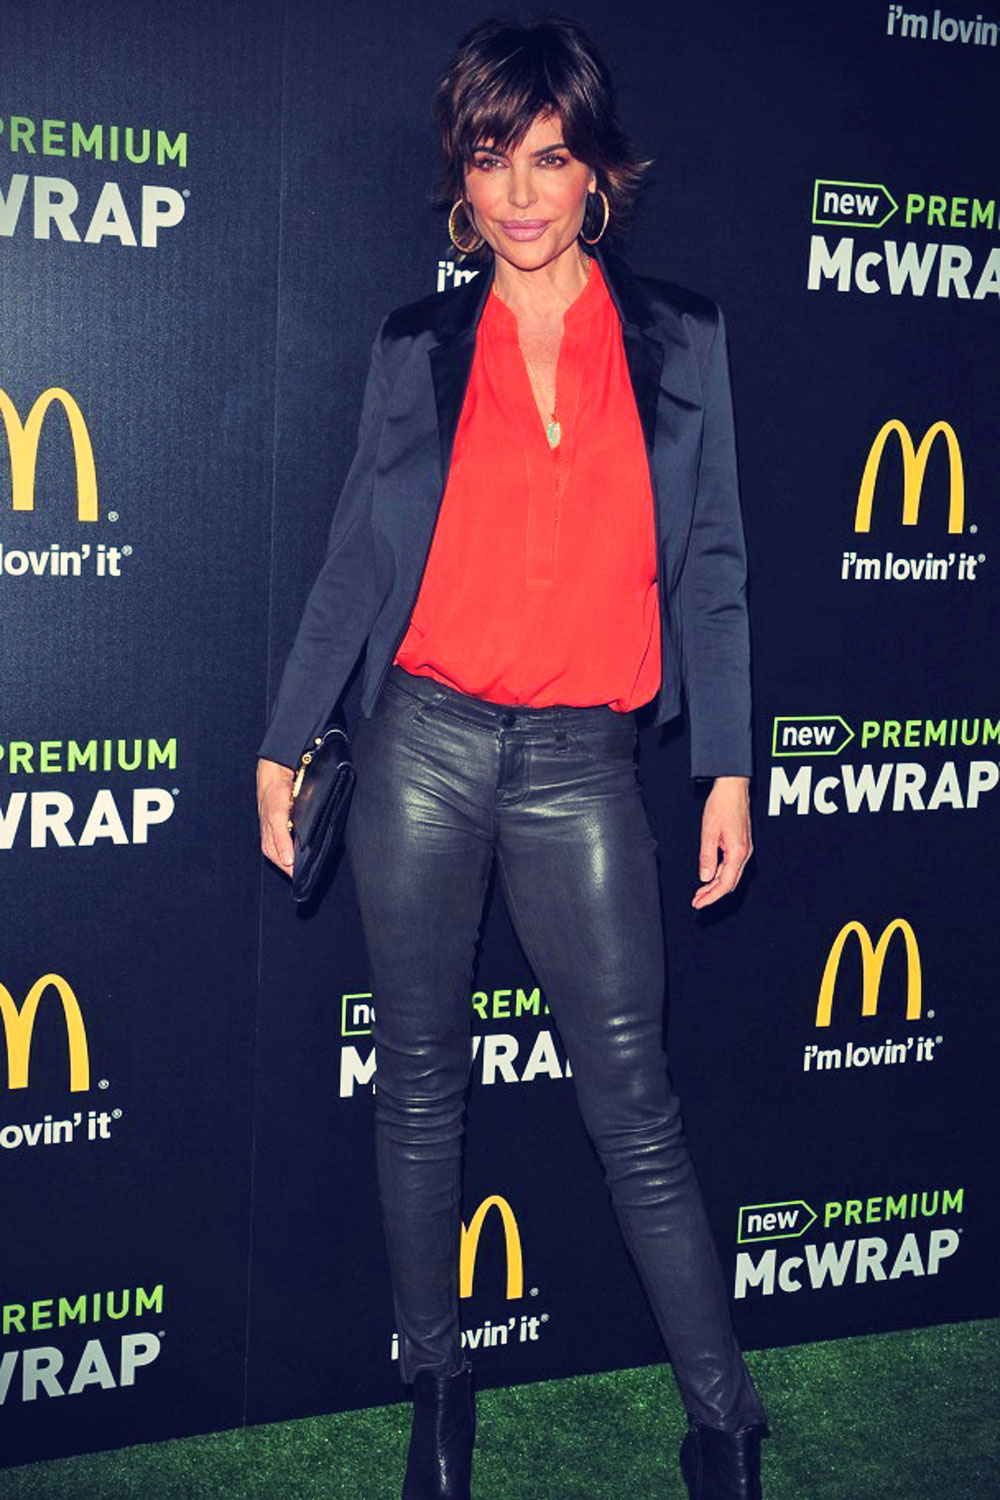 Lisa Rinna attends the launch of McDonald's Premium McWrap